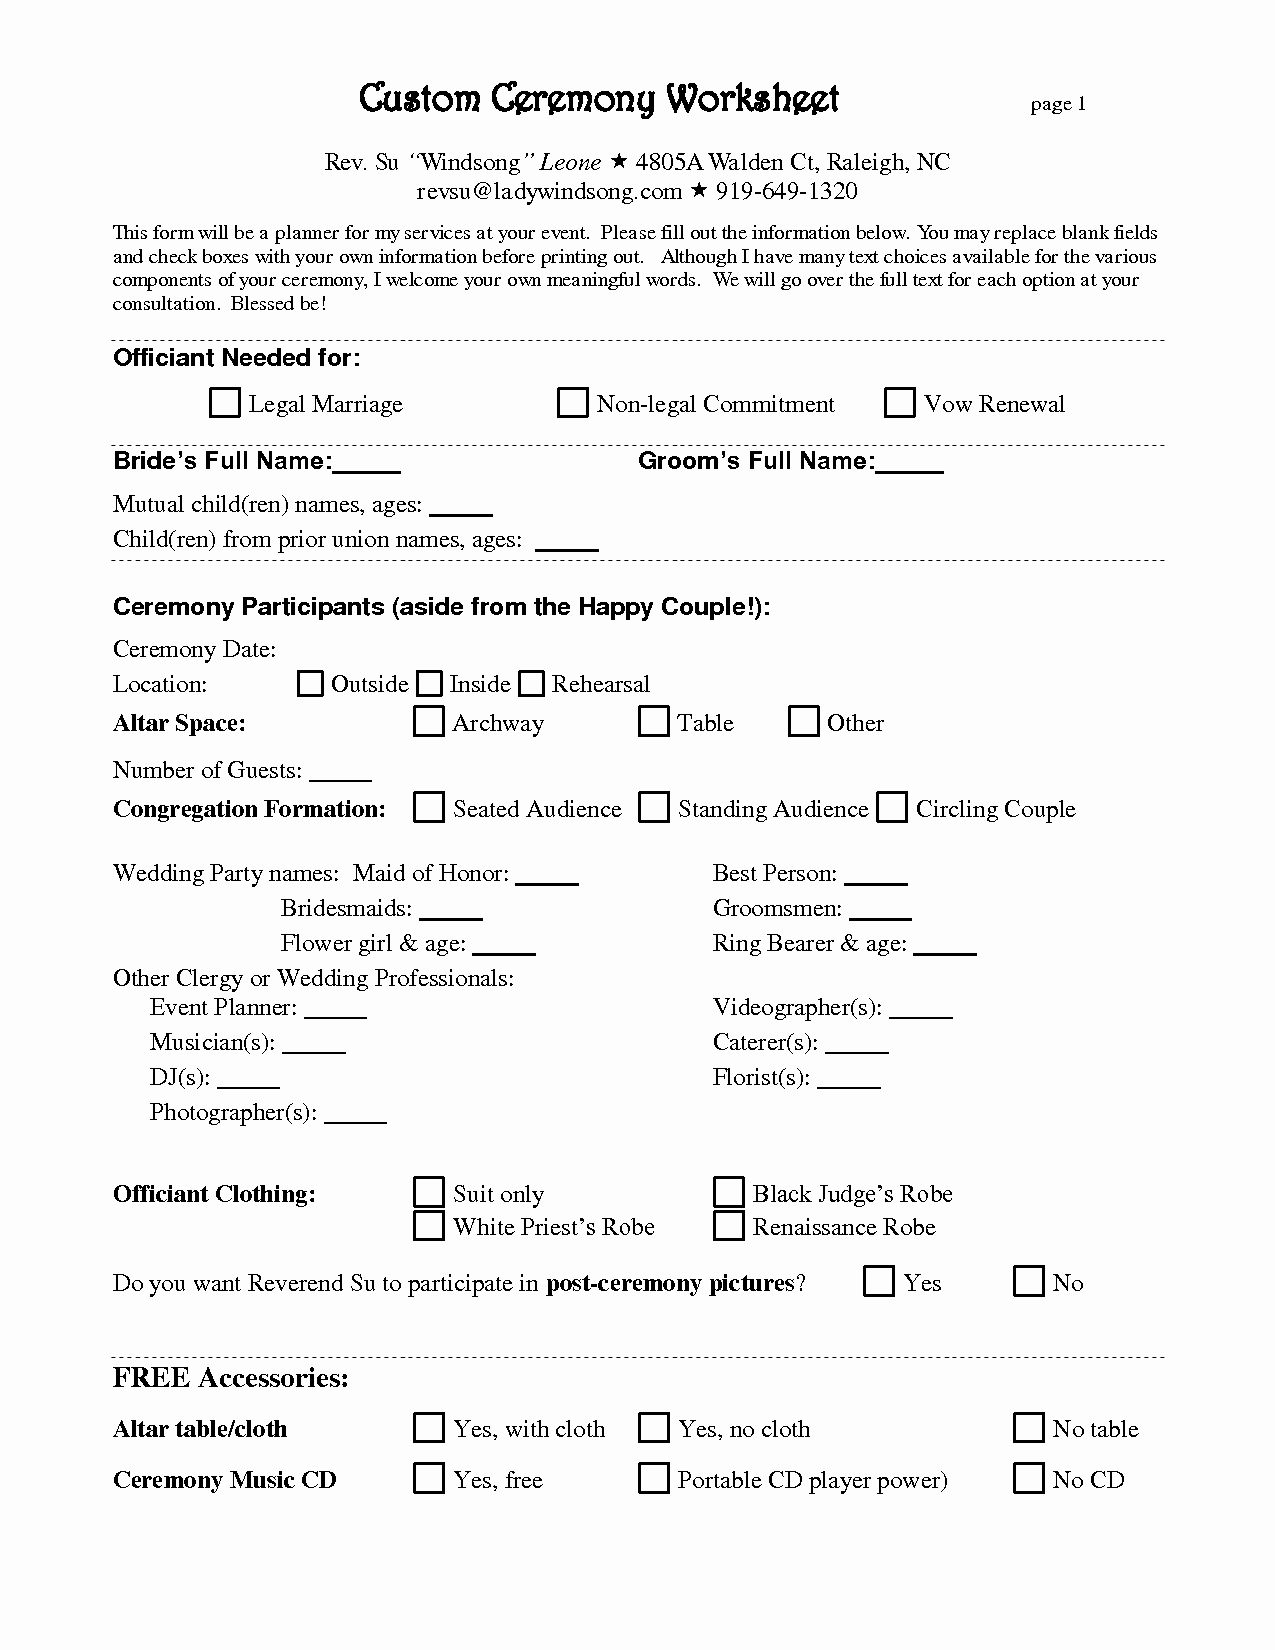 Printable Contract Template Or 7 Best Of Printable Wedding Planner Contract